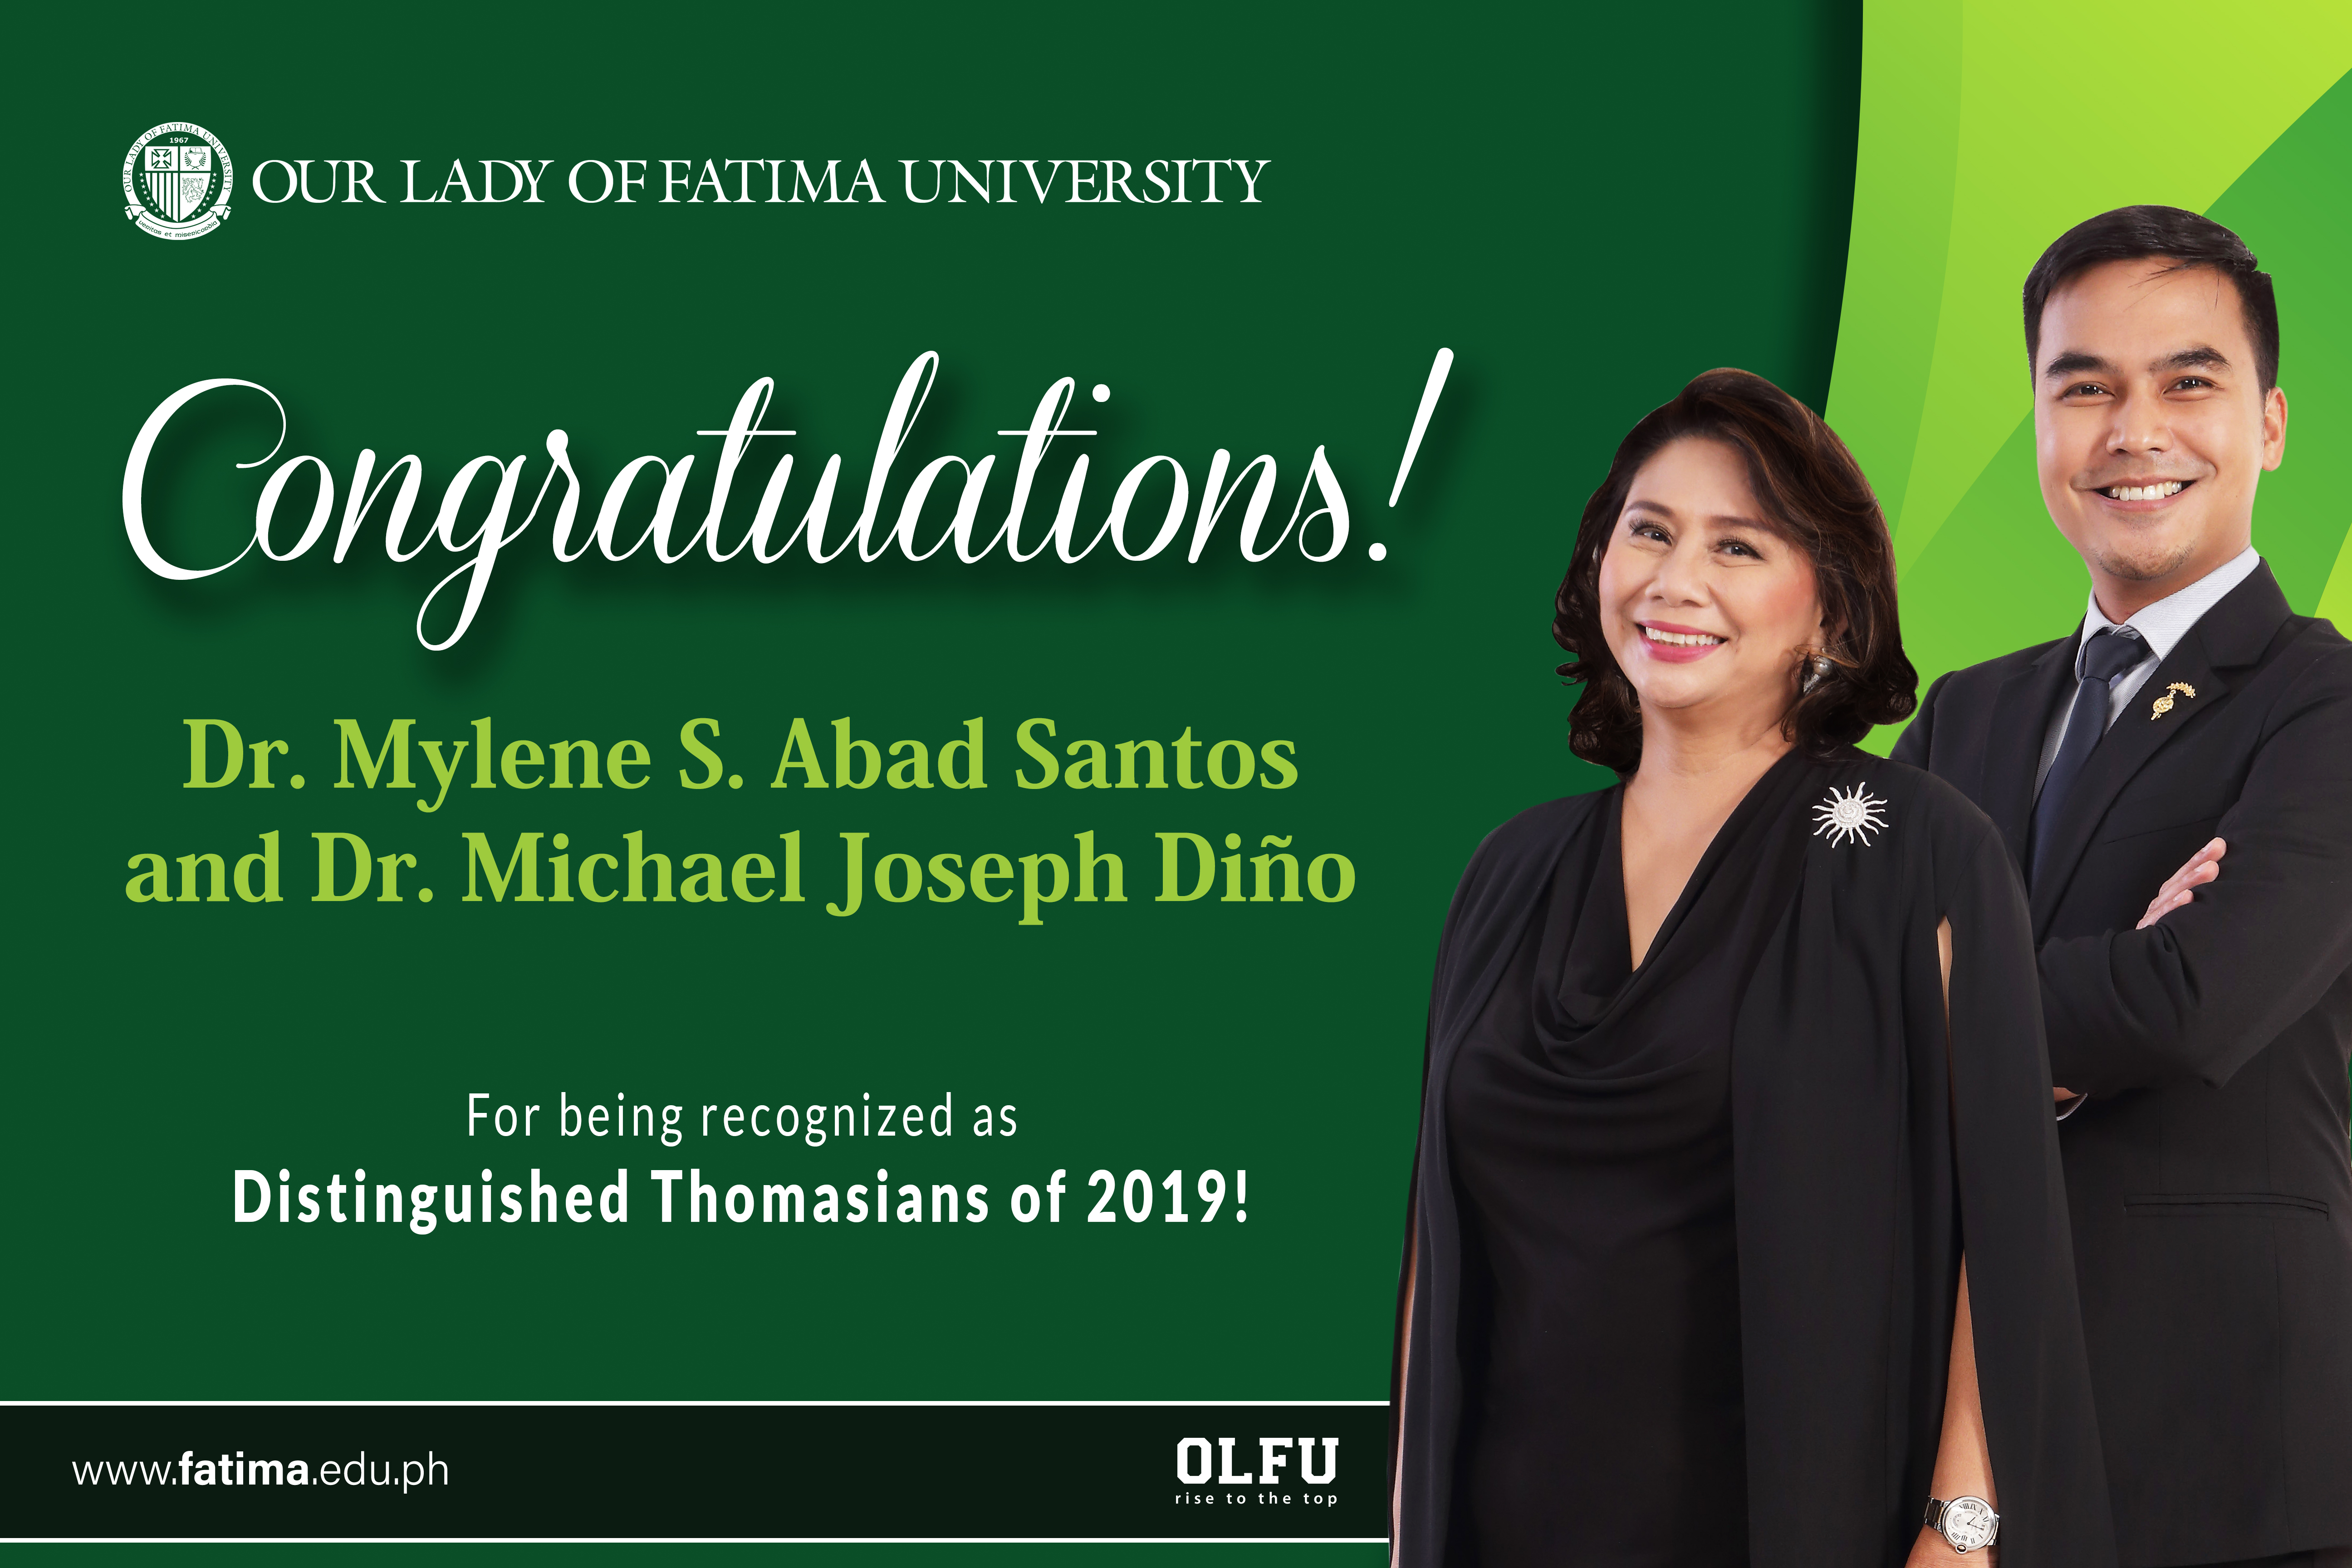 VP for Student Affairs and Director of Research Innovation, hailed Distinguished Thomasians of 2019